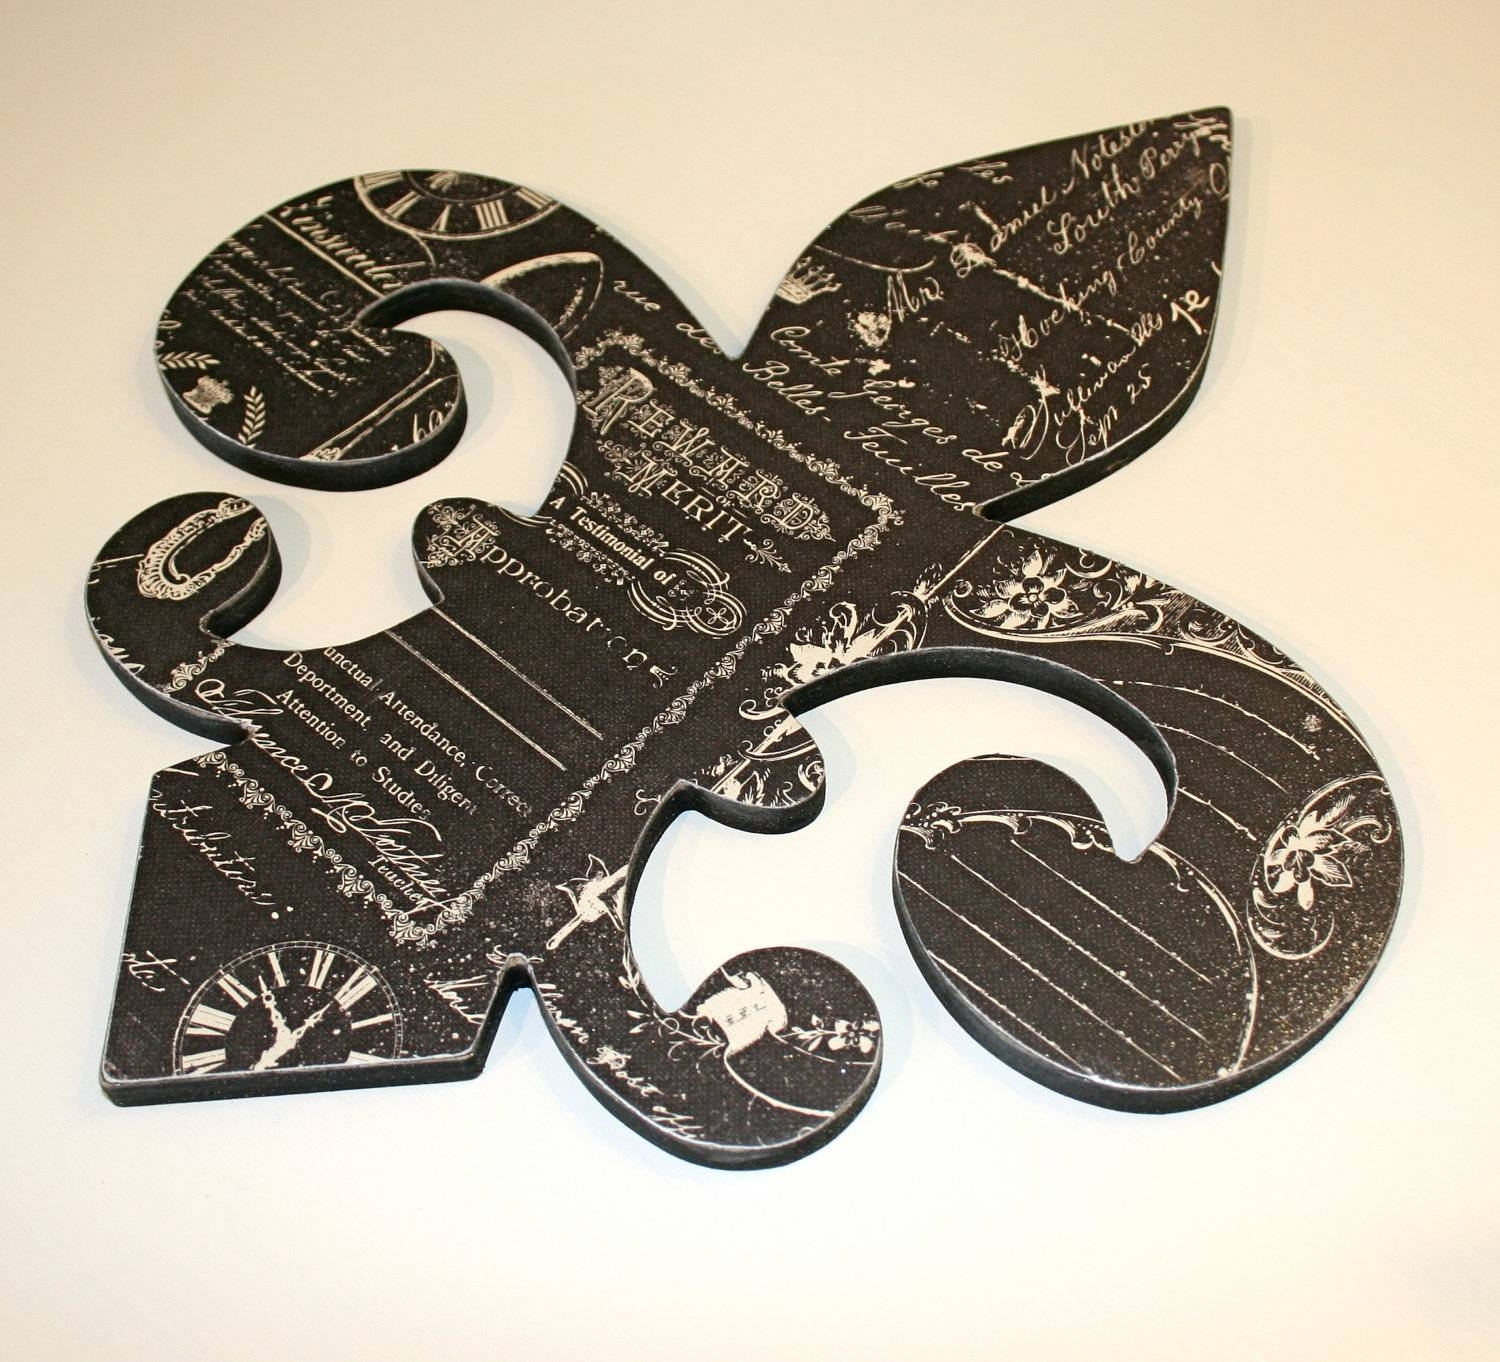 Fleur De Lis Wall Decor Mirror : Fleur De Lis Wall Decor – Design Pertaining To Recent Fleur De Lis Metal Wall Art (View 16 of 25)